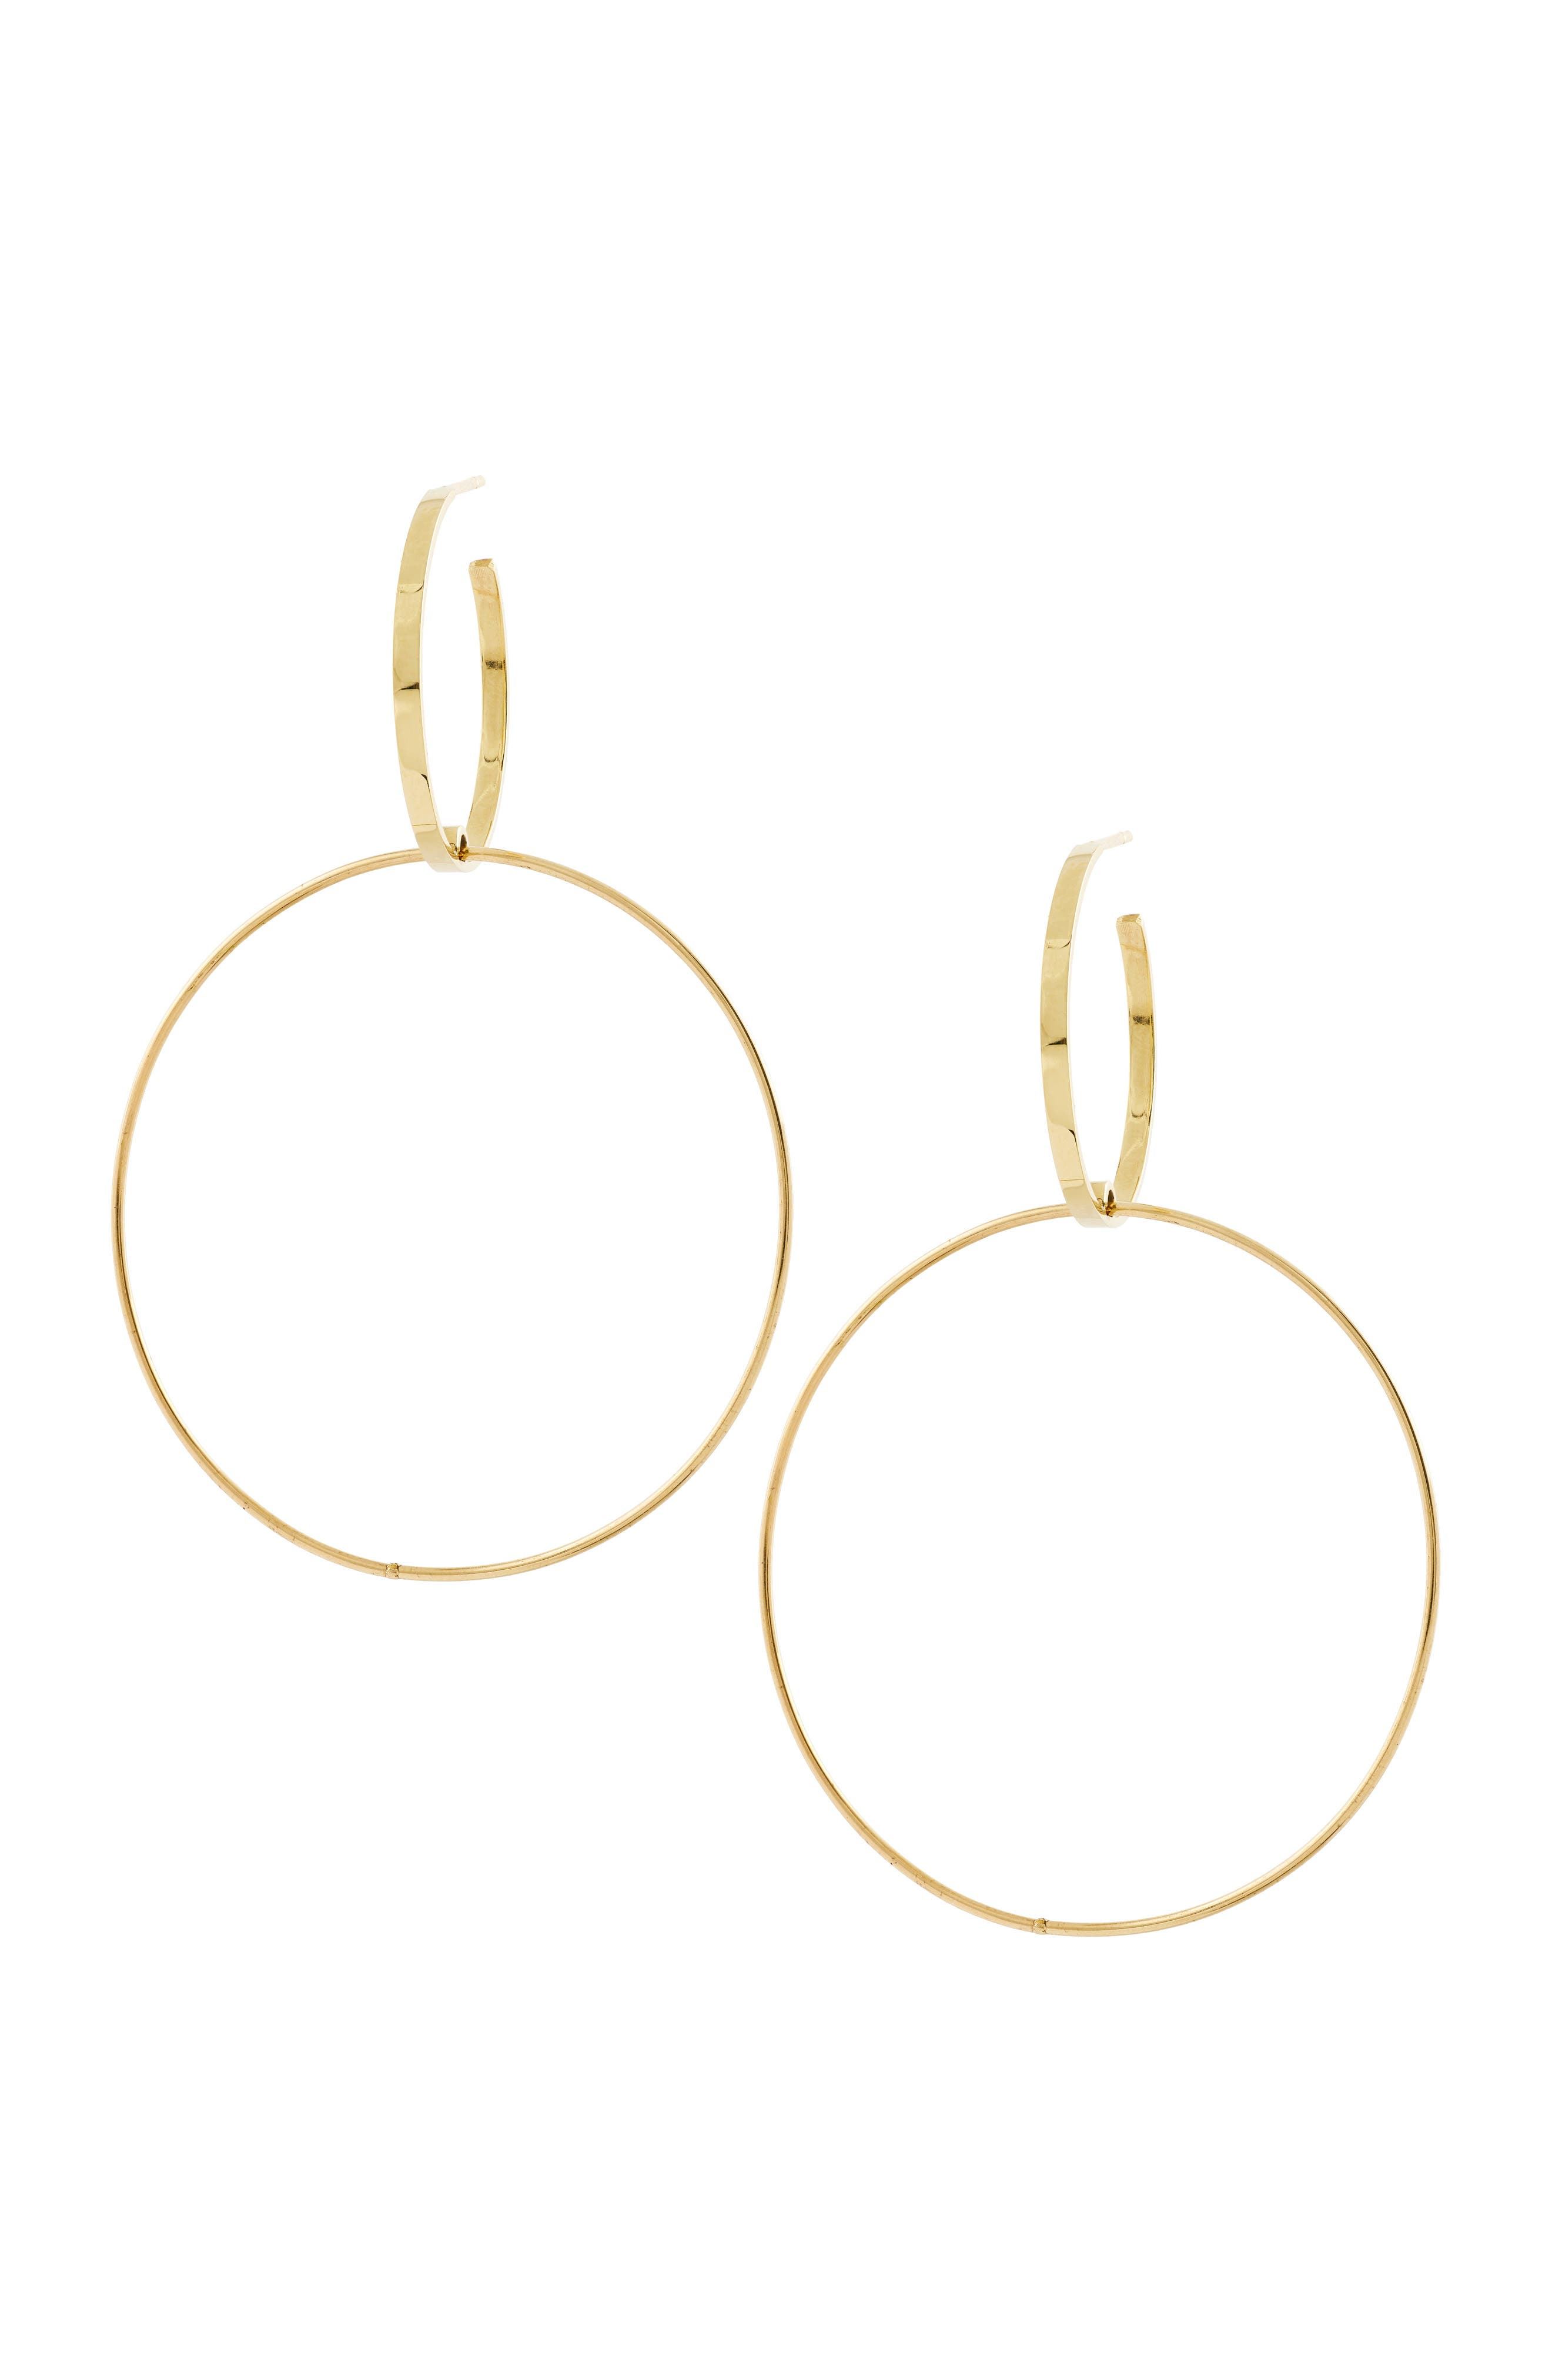 Double Bond Hoop Earrings,                         Main,                         color, Yellow Gold